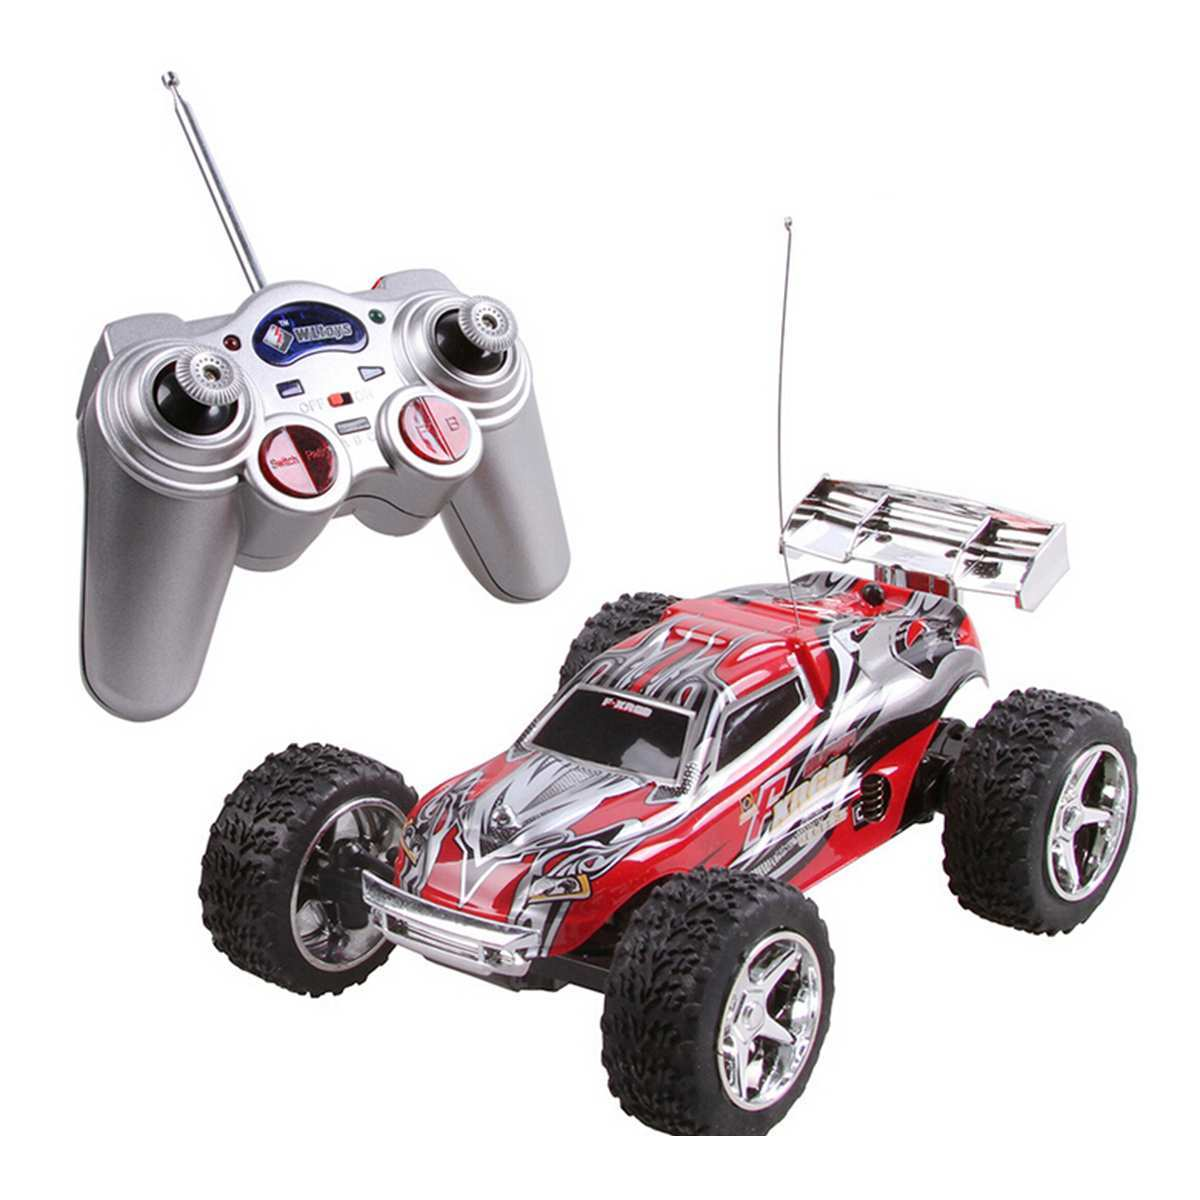 71 All New Wltoys 2019 Mini Buggy Release